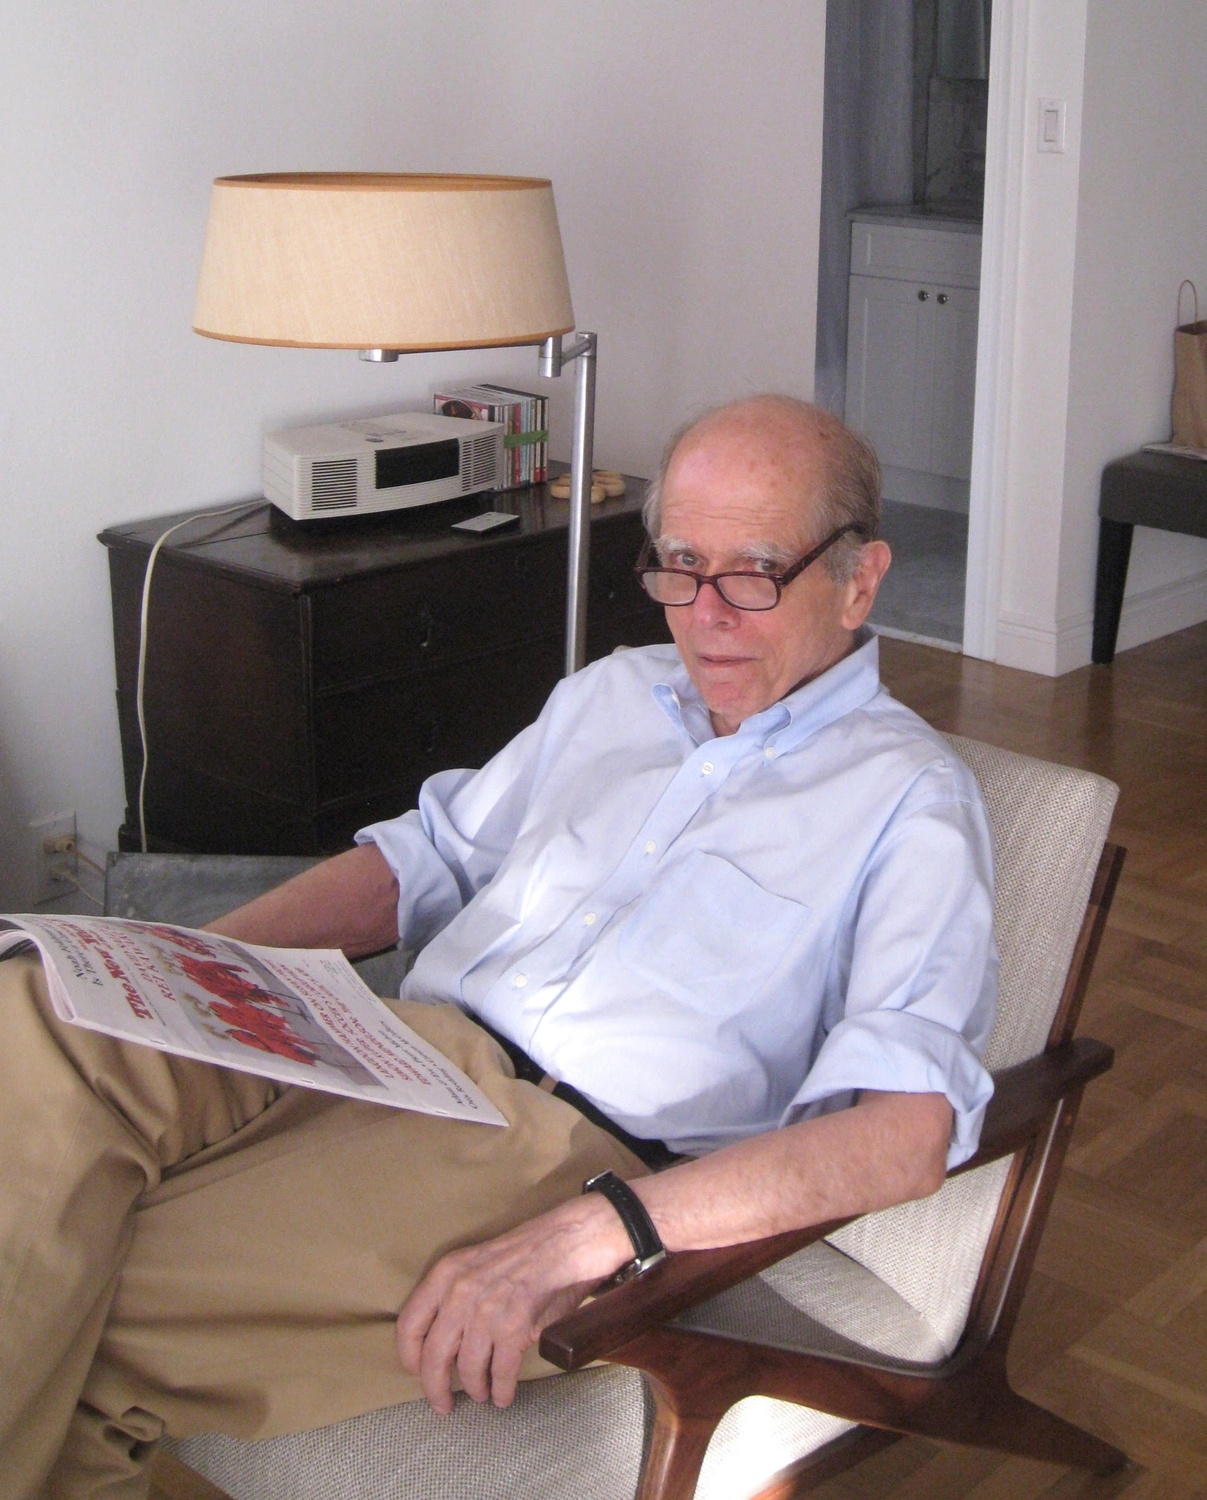 John B. Loengard '56, photographed by Jill Krementz in New York City.